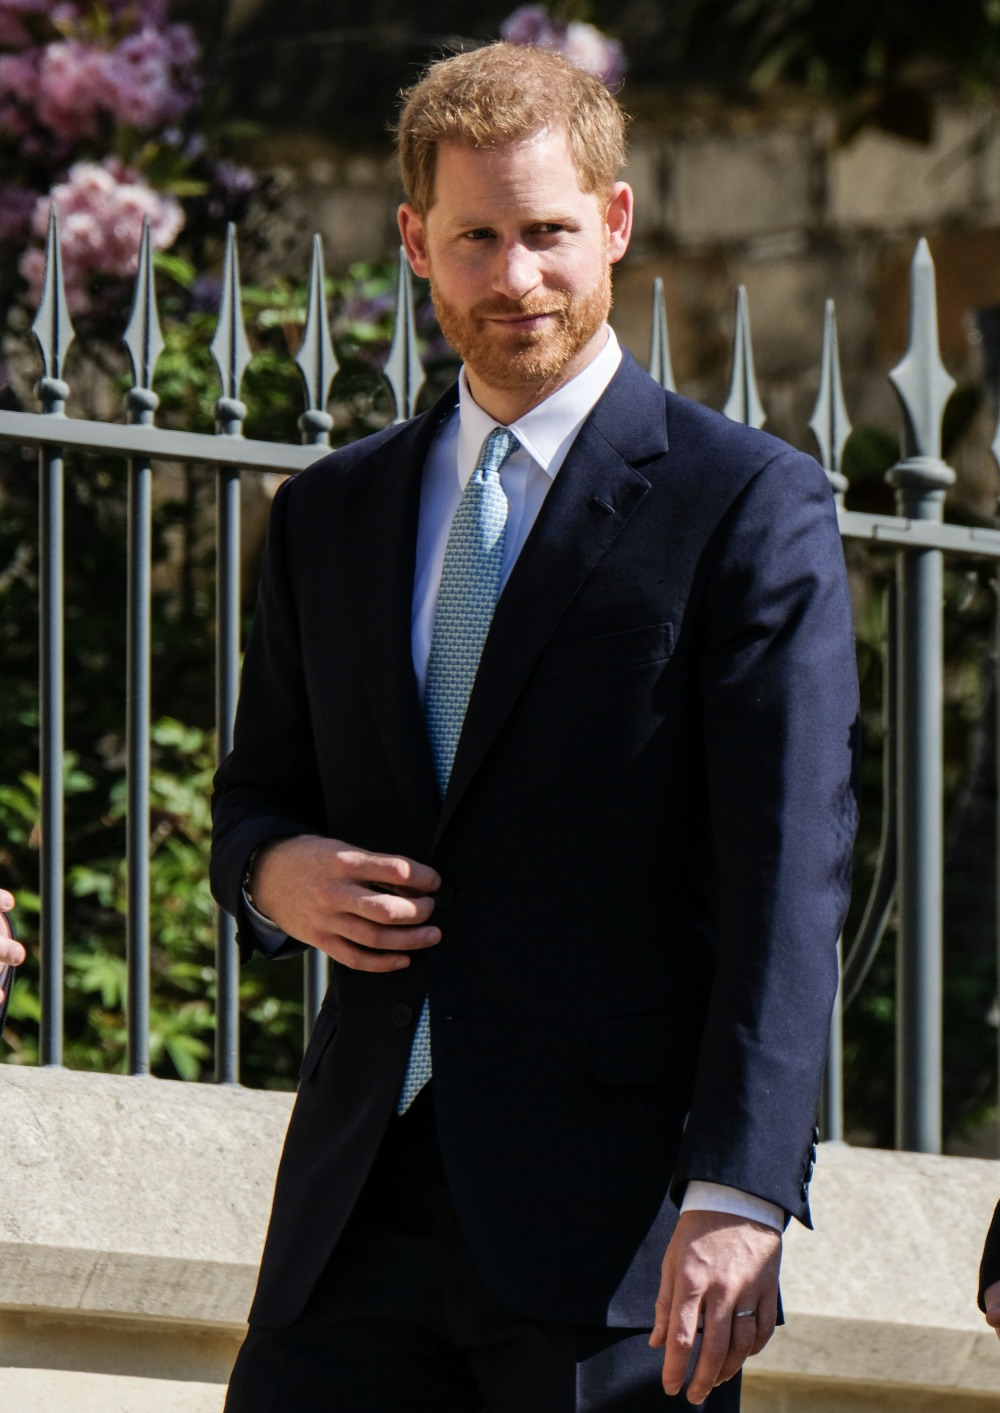 Prince Harry, The Duke of Sussex arrives at the Easter Sunday church service at St.George's Chapel in Windsor Castle on Sunday April 21, 2019